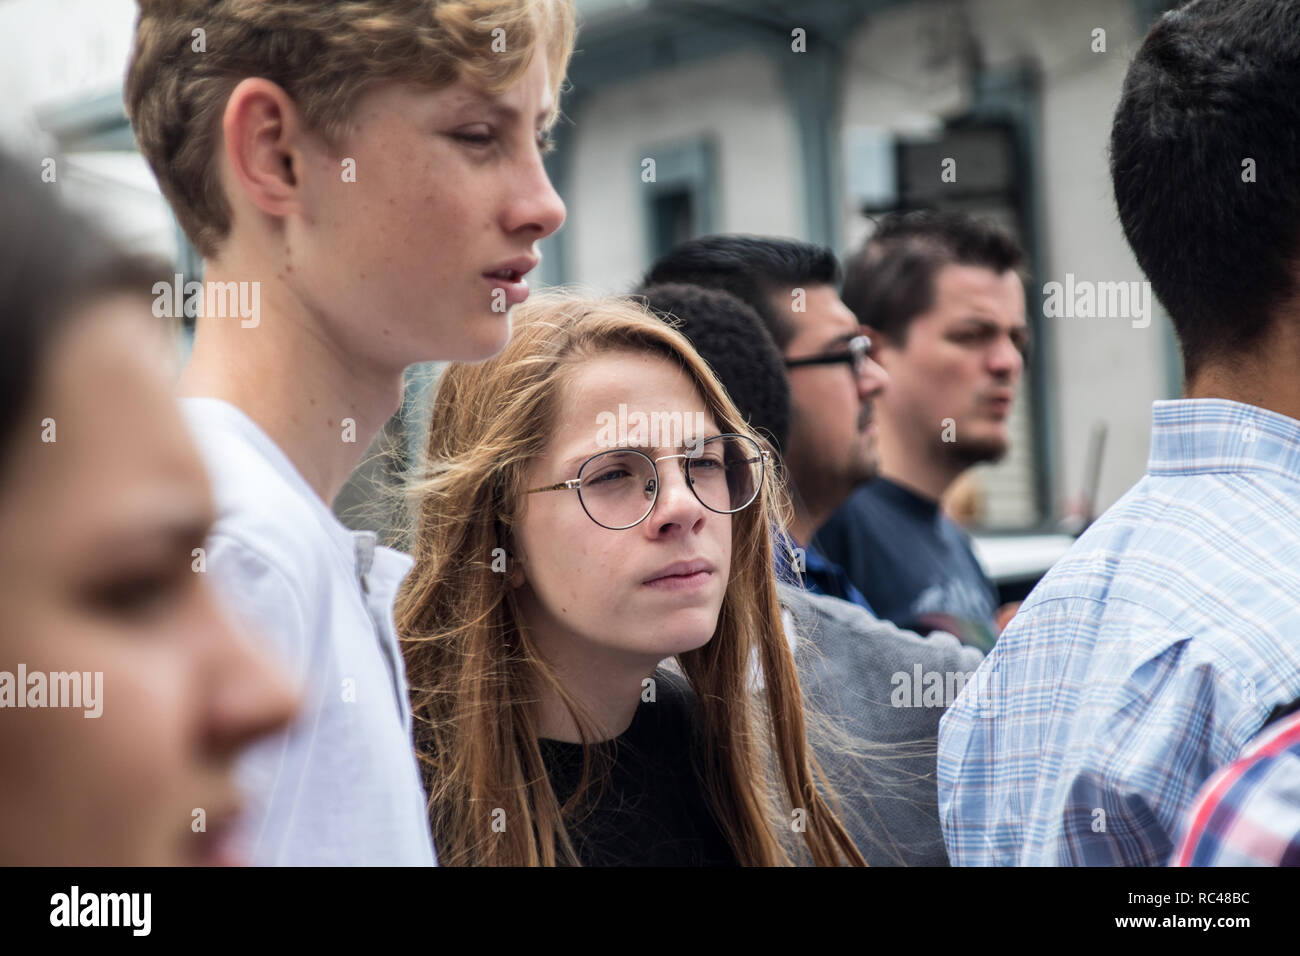 A portrait of boy and a girl walking on a crowded street - Stock Image